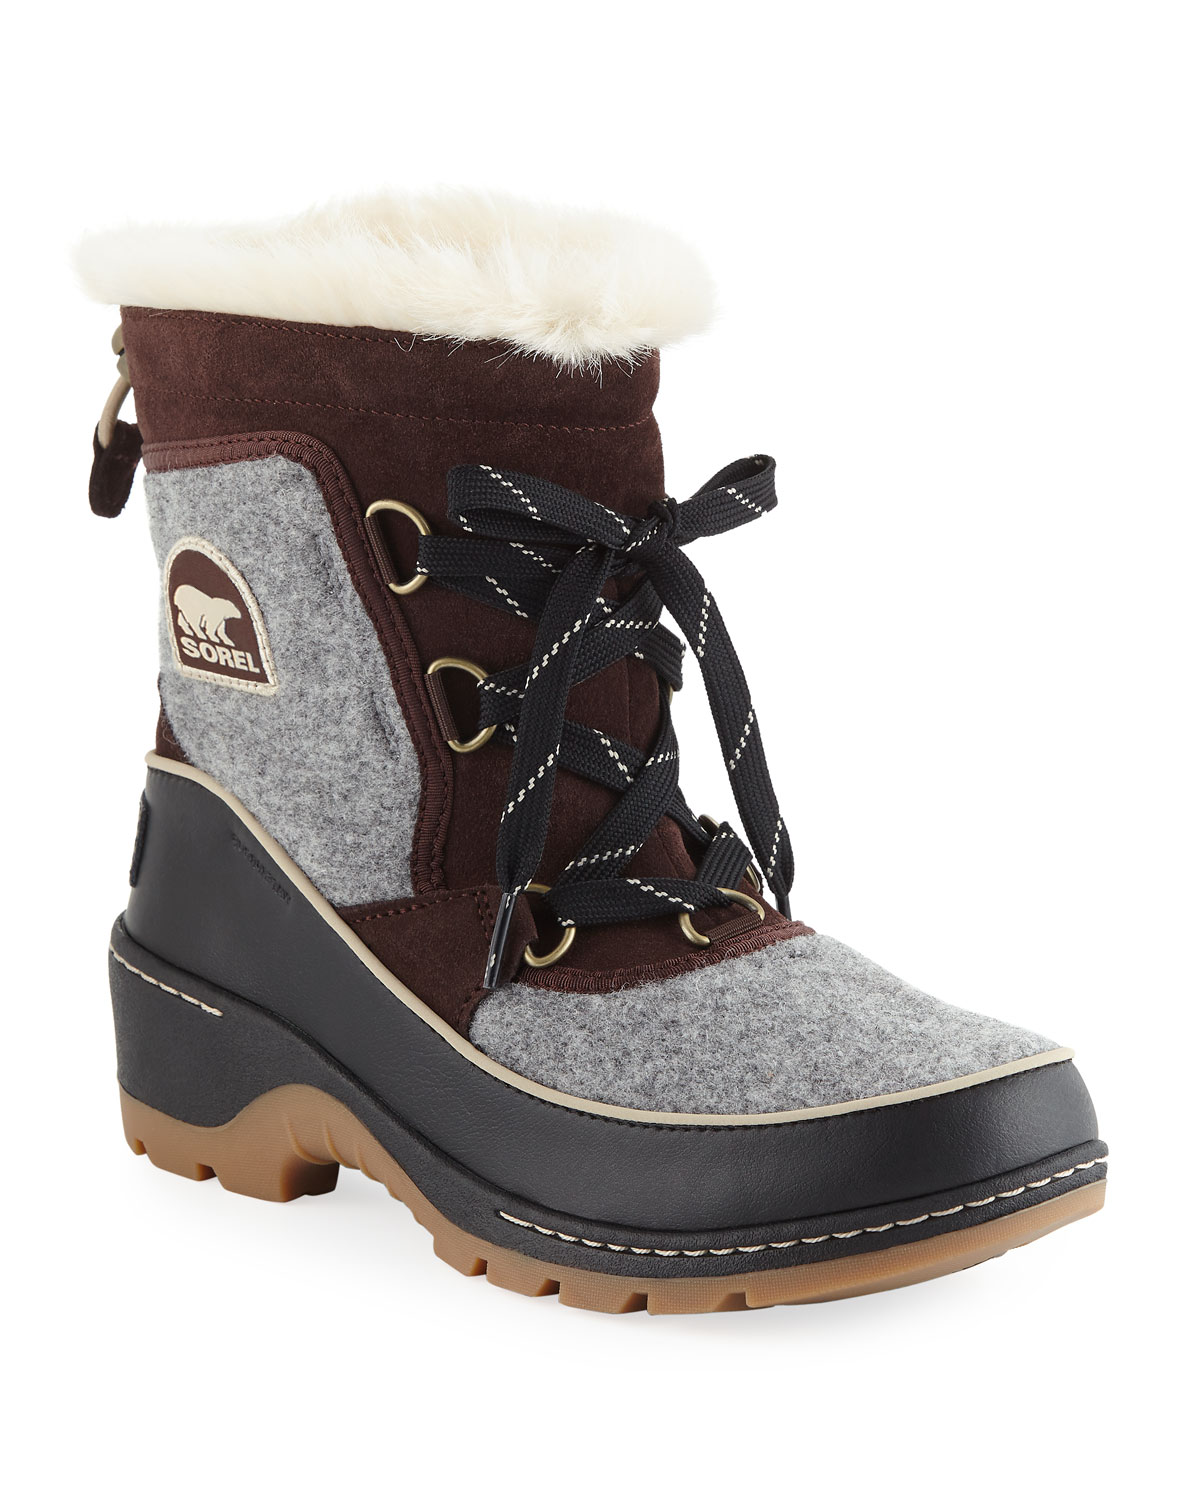 29a32cf398 Sorel Tivoli III Waterproof Lace-Up Winter Boots with Faux Fur ...